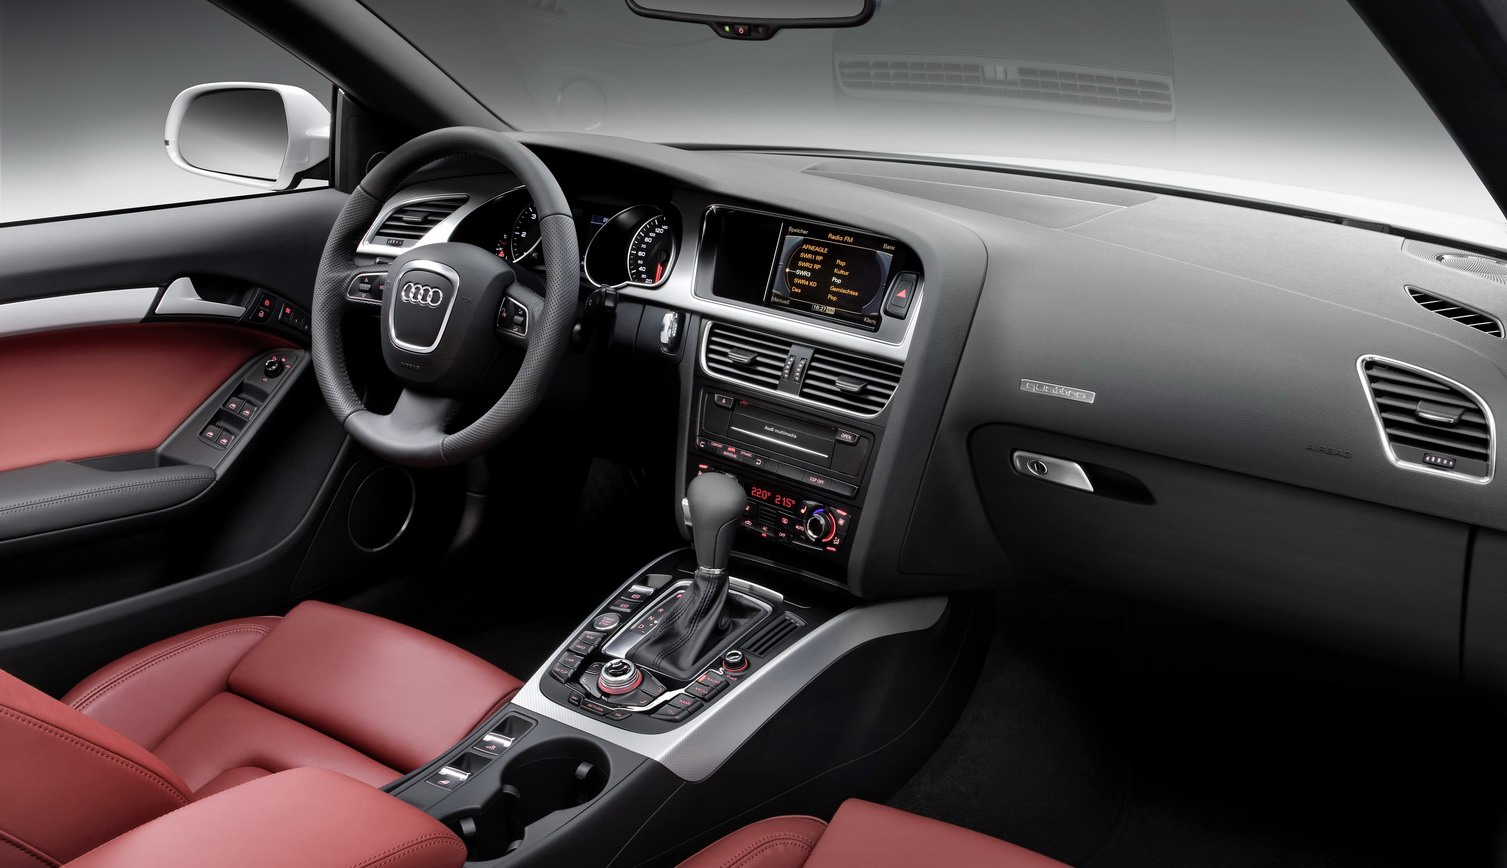 Audi A5 Cabriolet 2010 Interior Img 8 It S Your Auto